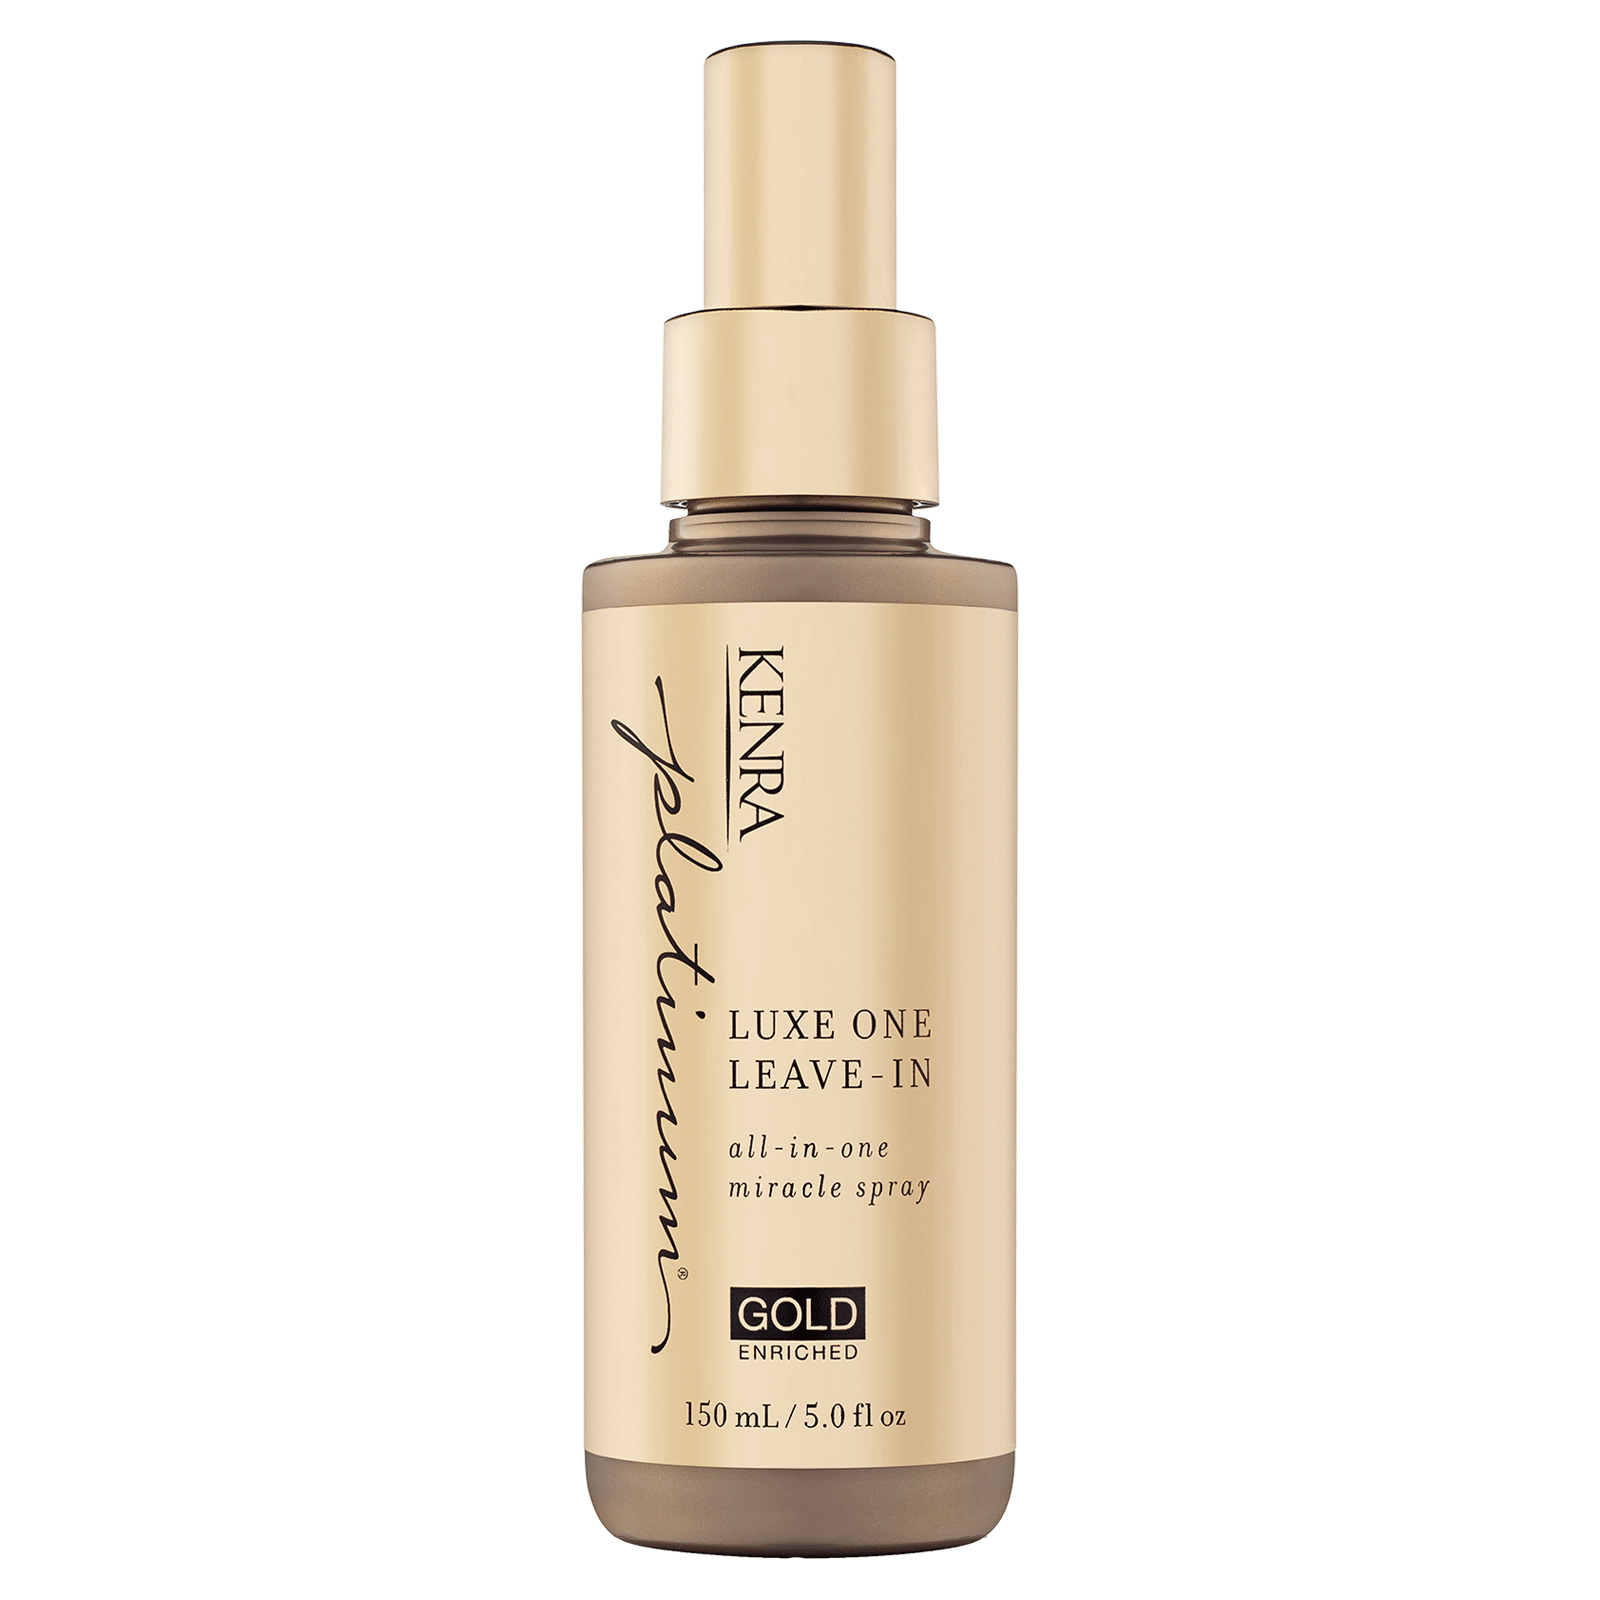 Luxe One Leave-In Spray